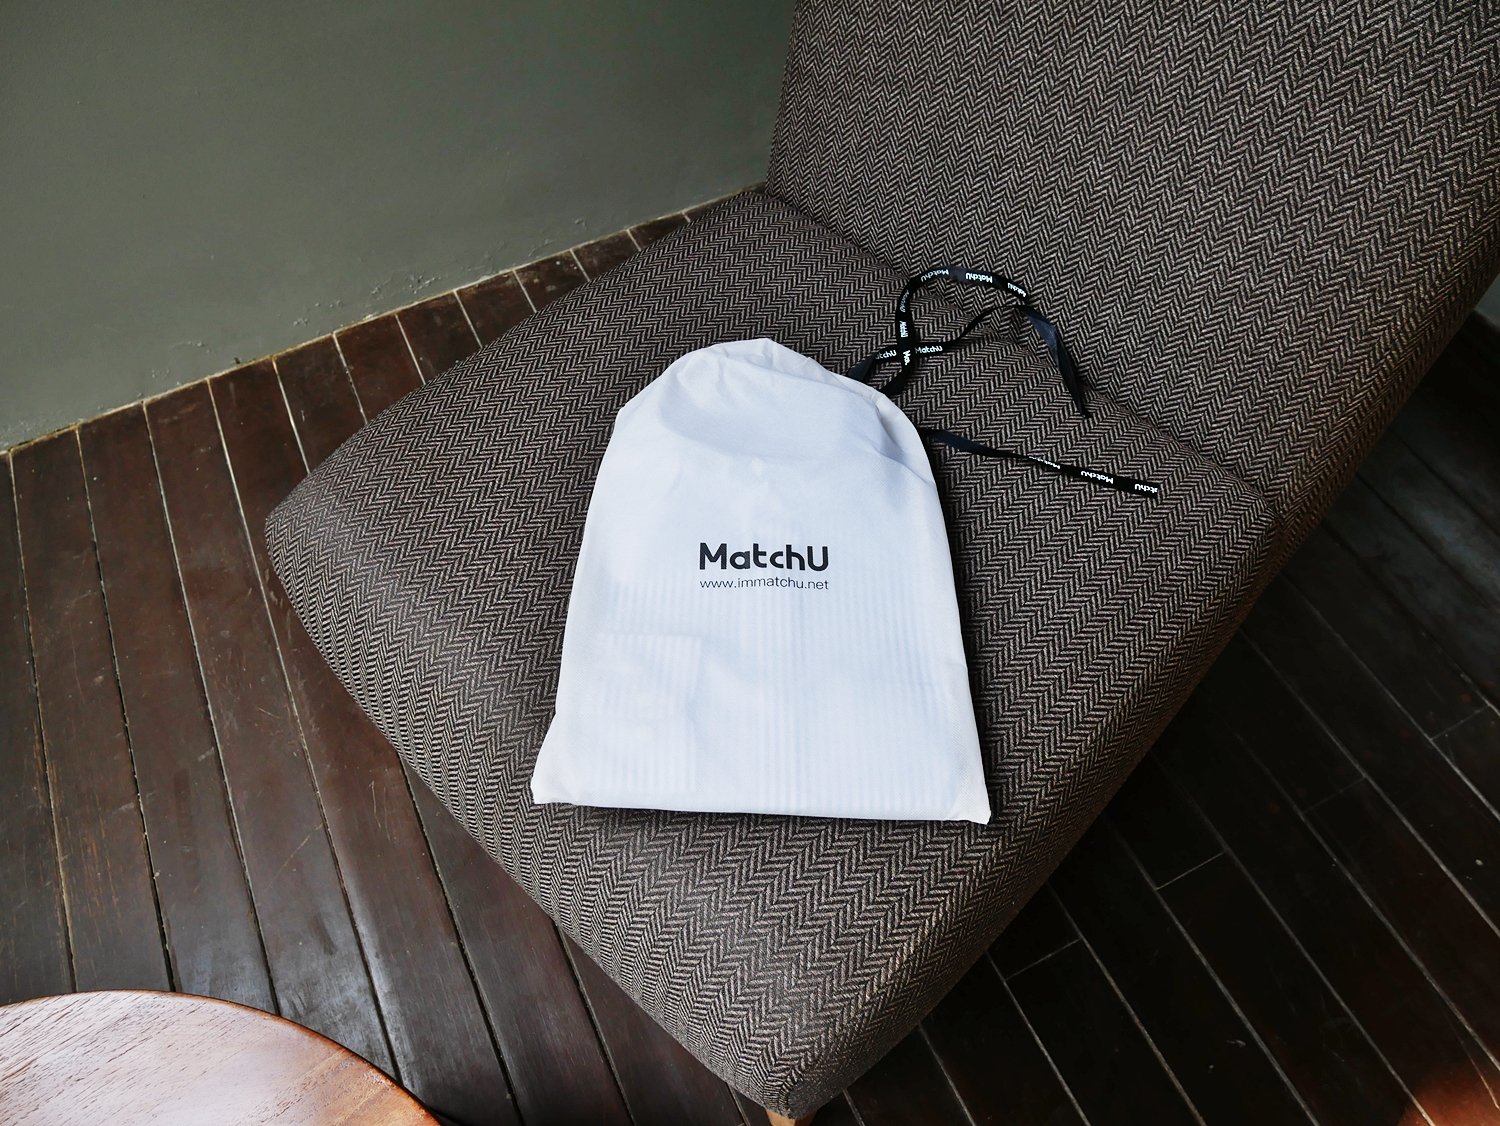 EASY ONLINE SHOPPING AT MATCHUTAILOR